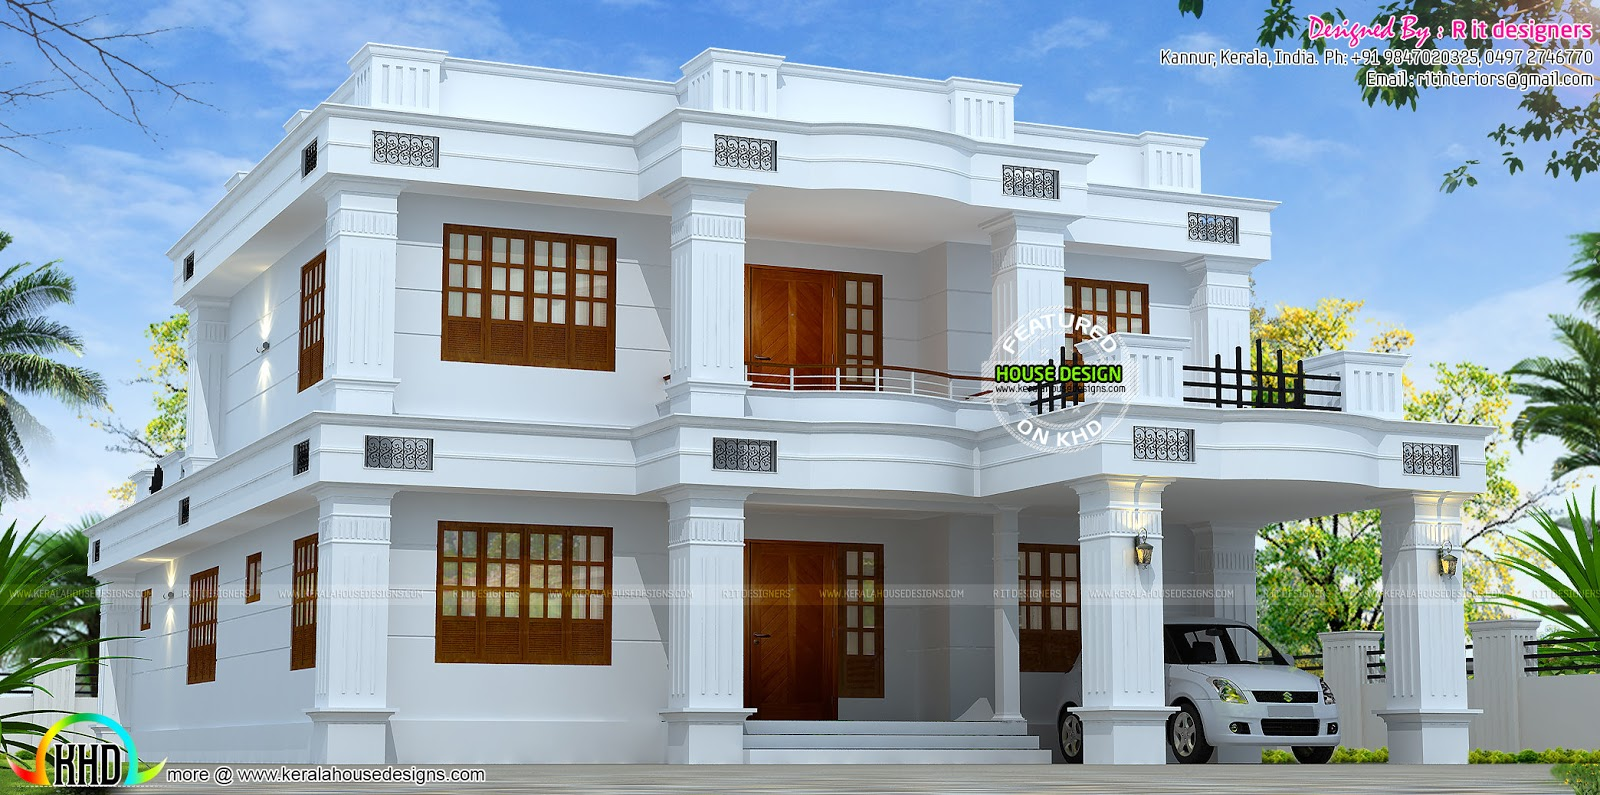 February 2016 kerala home design and floor plans for Kerala house designs and plans